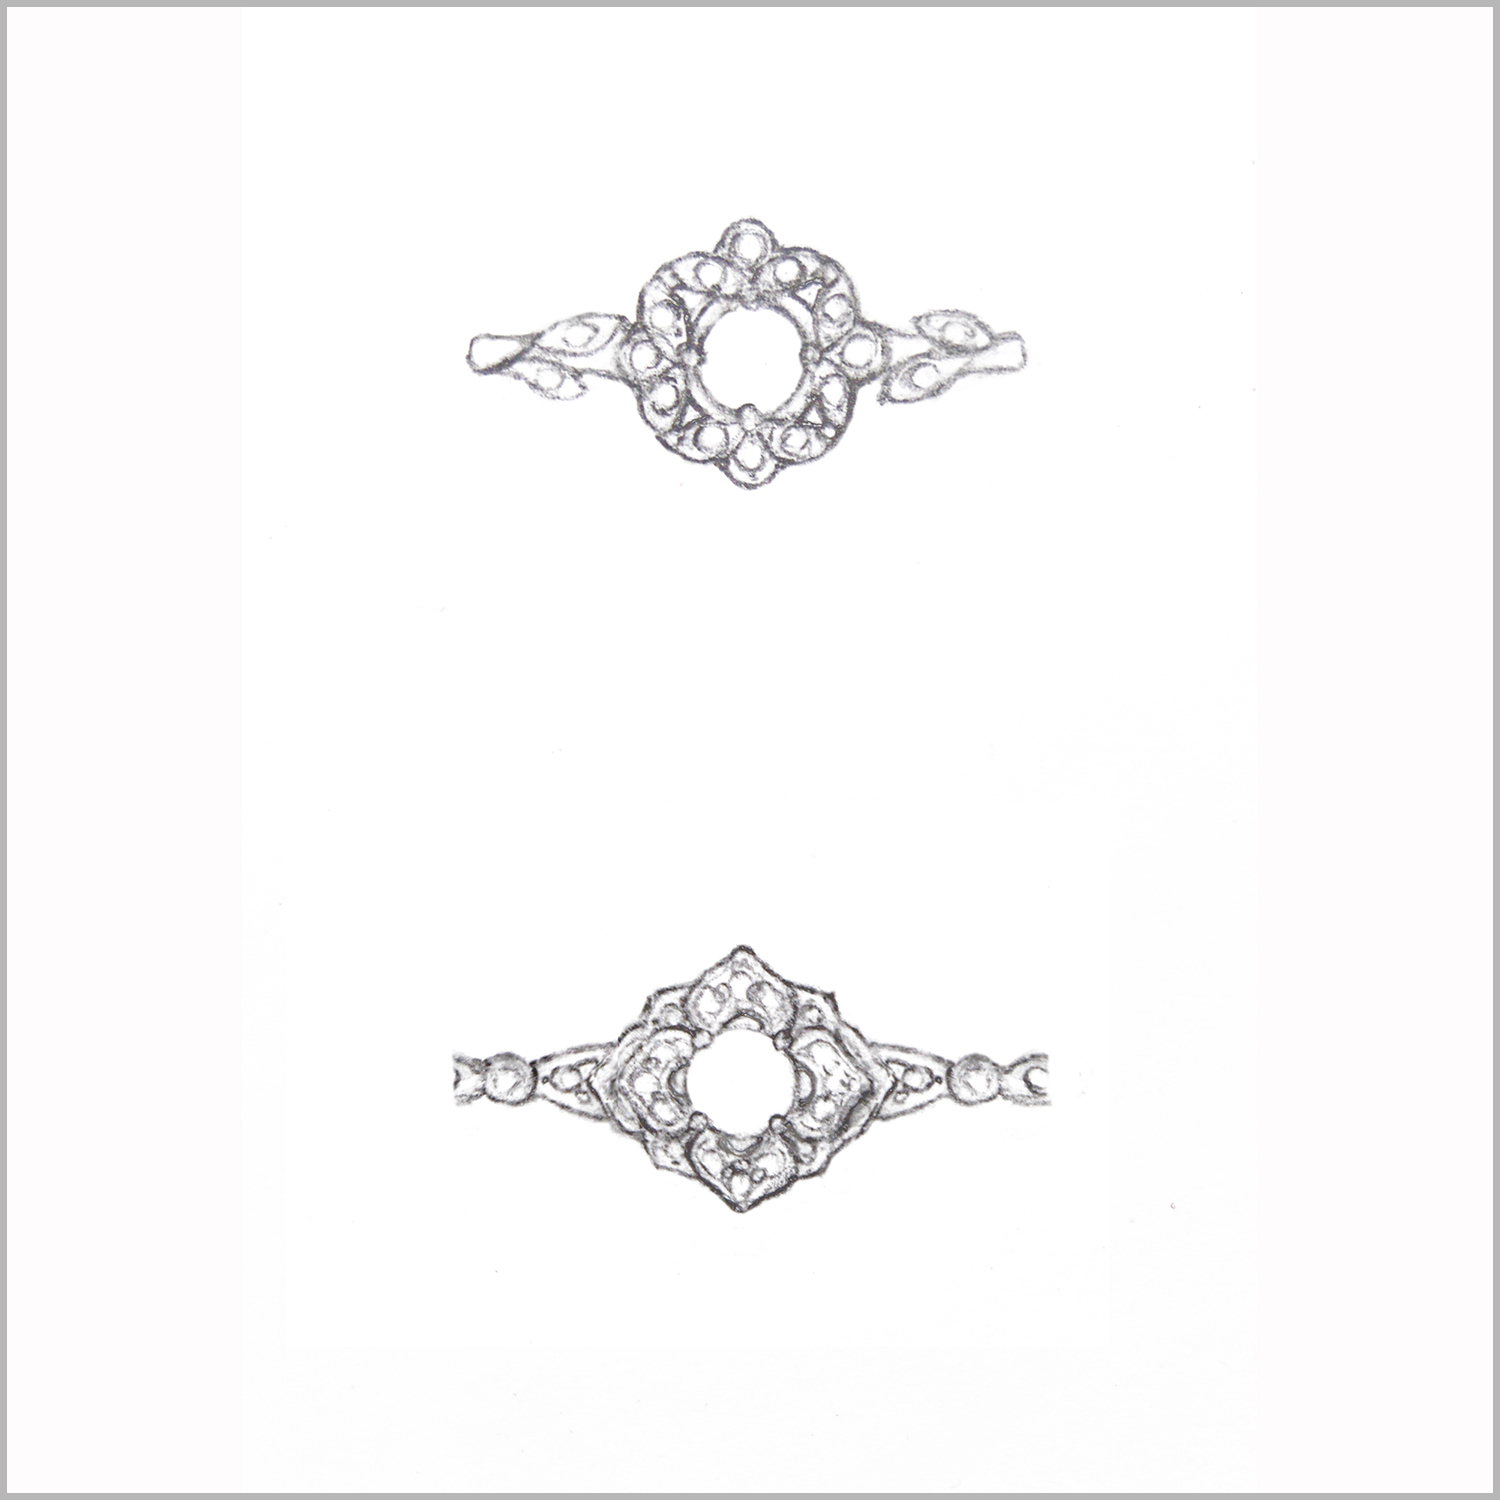 Sketches for custom designed engagement ring. Renderings to show customer who was designing her own engagement ring with her diamonds in a vintage floral design